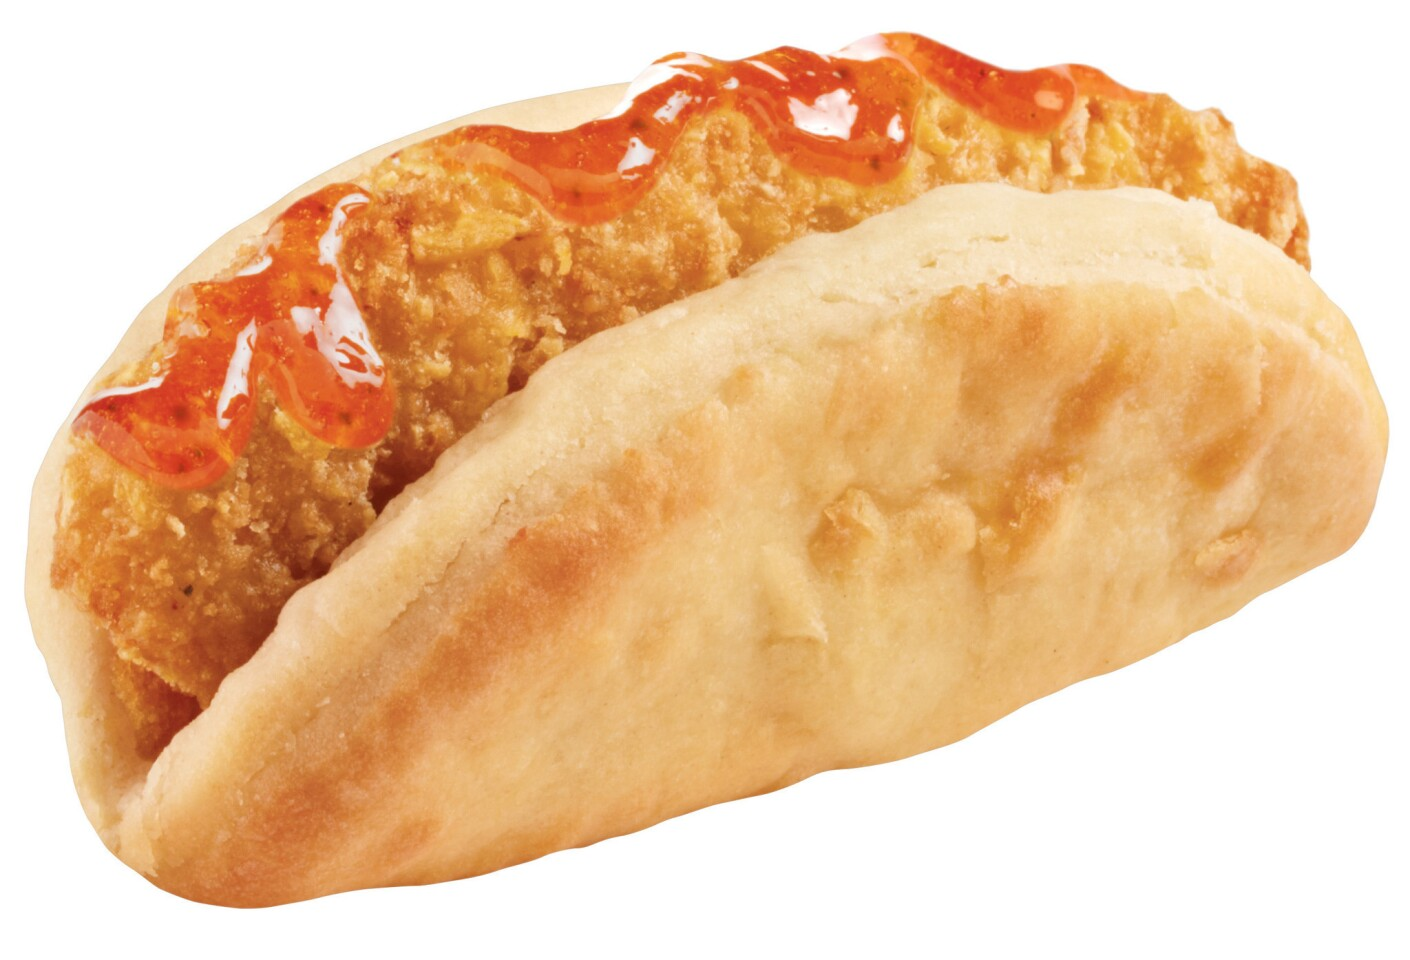 Taco Bell is testing a new biscuit taco filled with your choice of crispy chicken and jalapeno honey sauce (shown), crispy chicken and gravy, egg, sausage and cheese or bacon, egg and cheese.